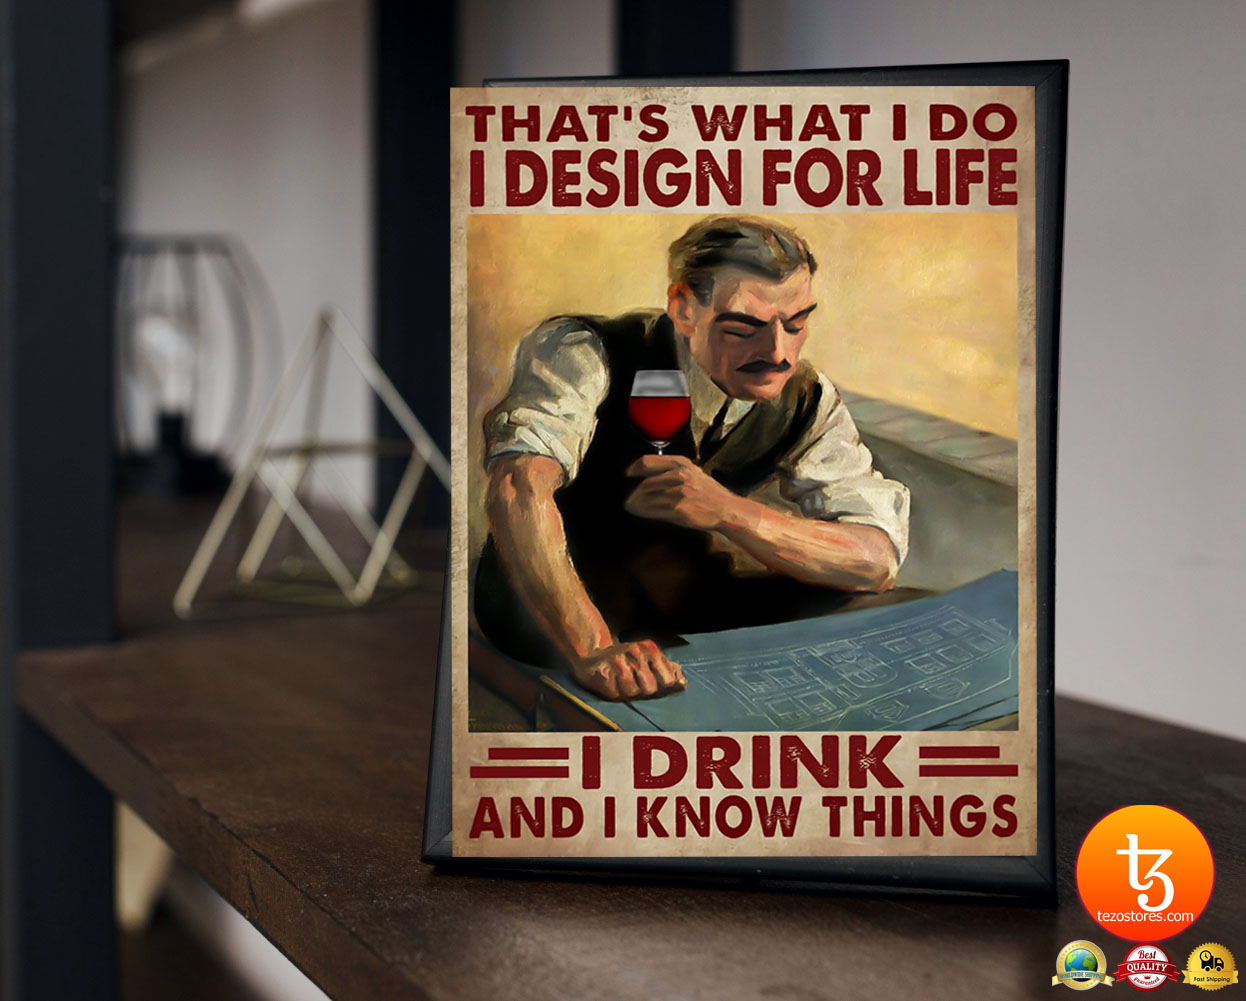 That's what I do I design for life I drink and I know things poster 19